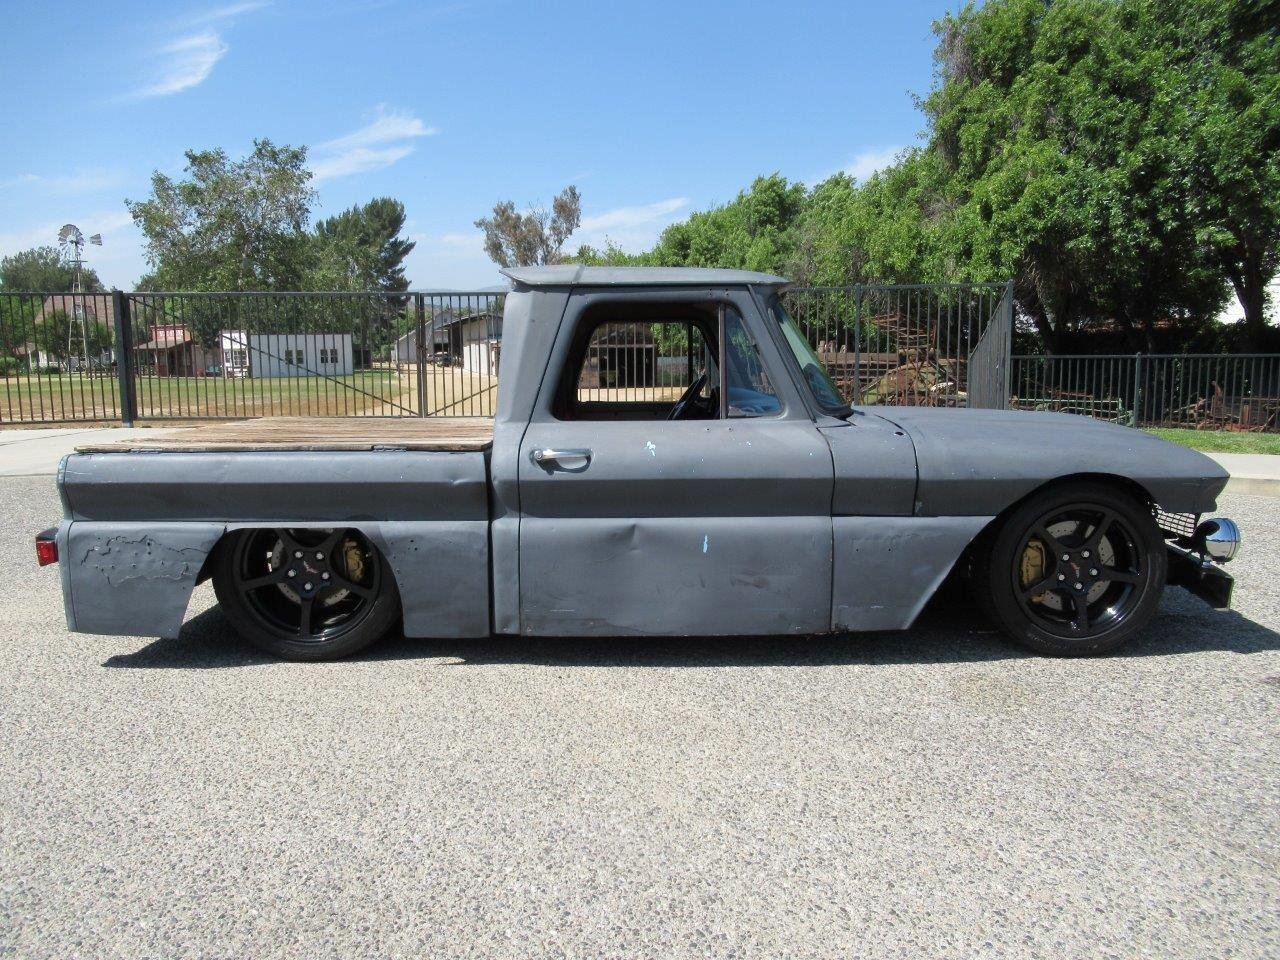 1966 Chevrolet Rat Vette Truck For Sale (picture 2 of 6)